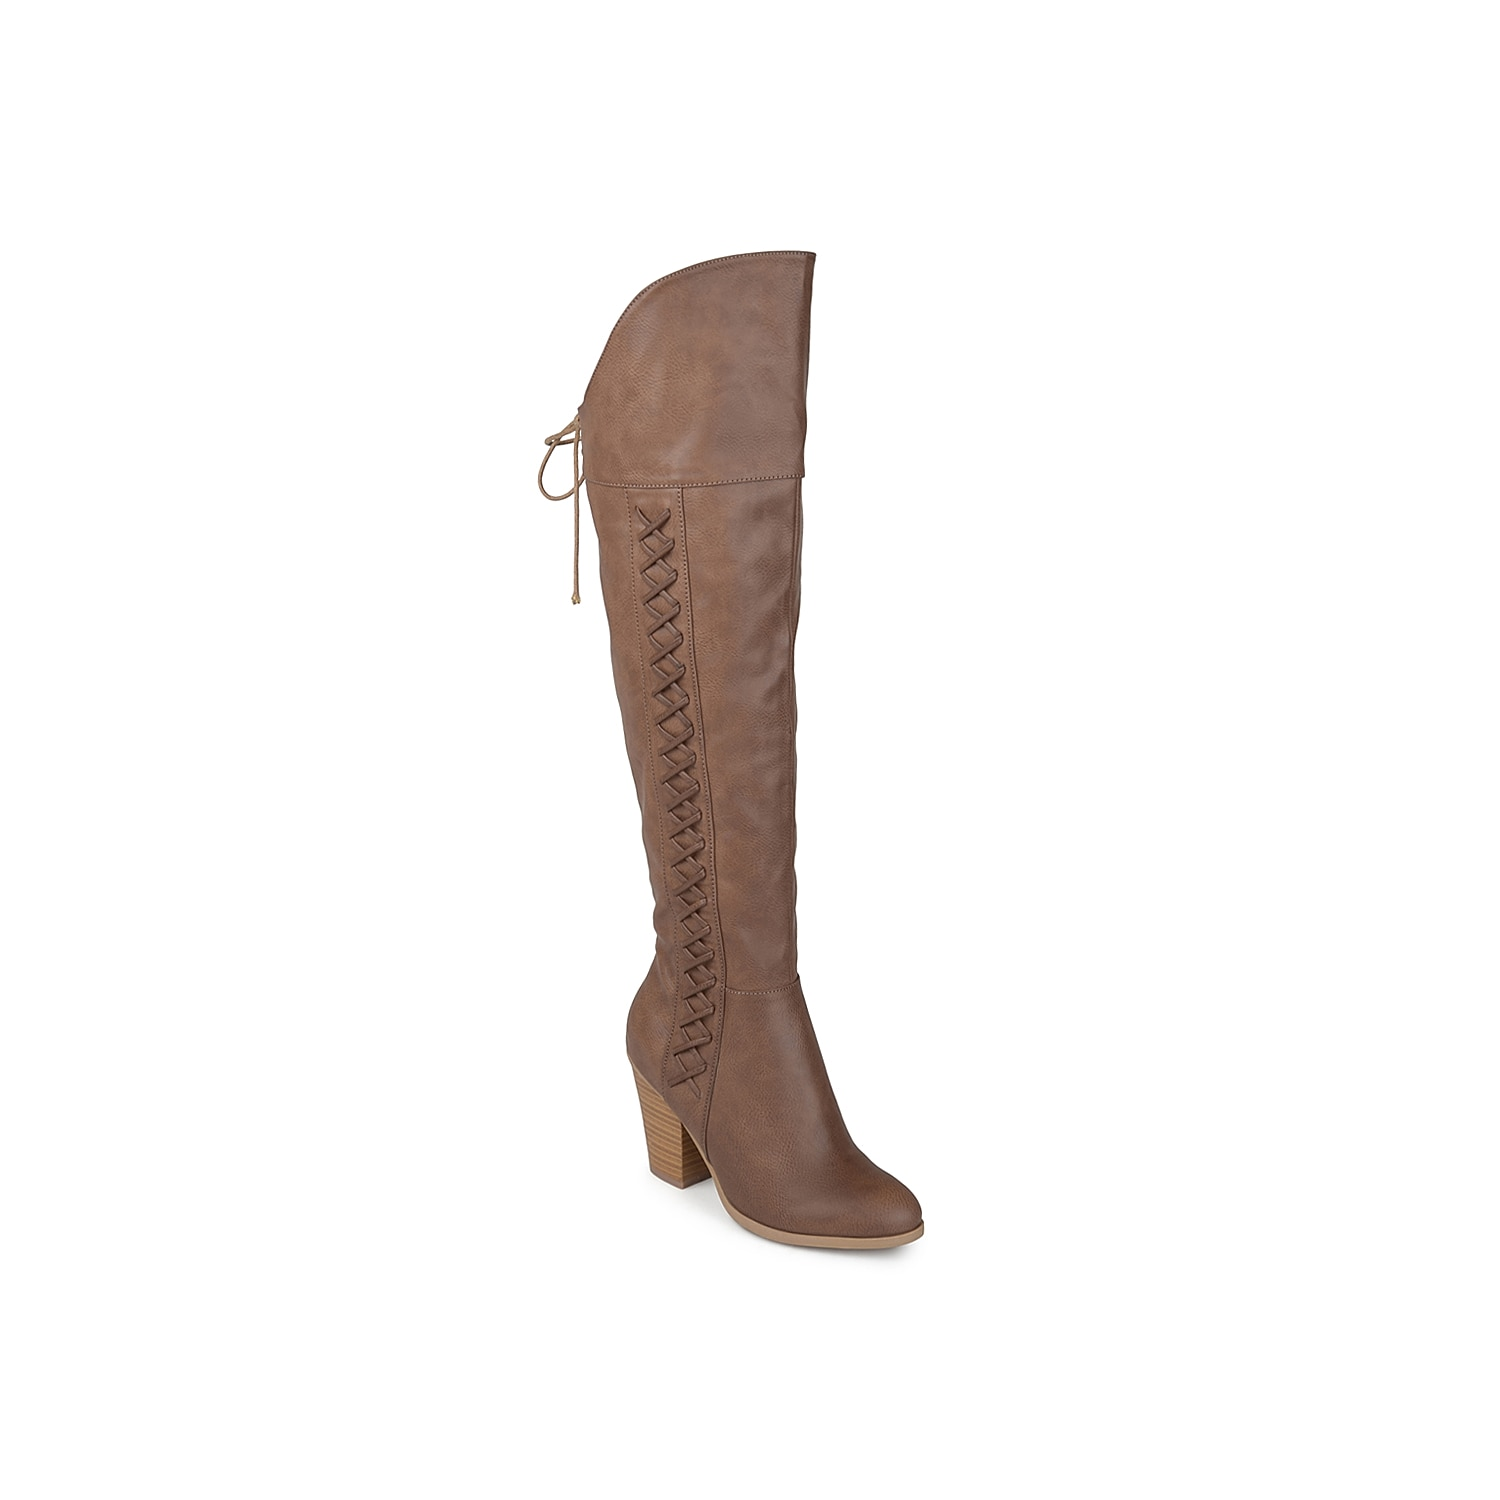 Take your style to the next level with the Spritz wide calf over the knee boot from Journee Collection. A bold stacked heel elevates the style of this tall boot that displays striking lace-up details and a raised vamp for a trendy look.Click here for Boot Measuring Guide.